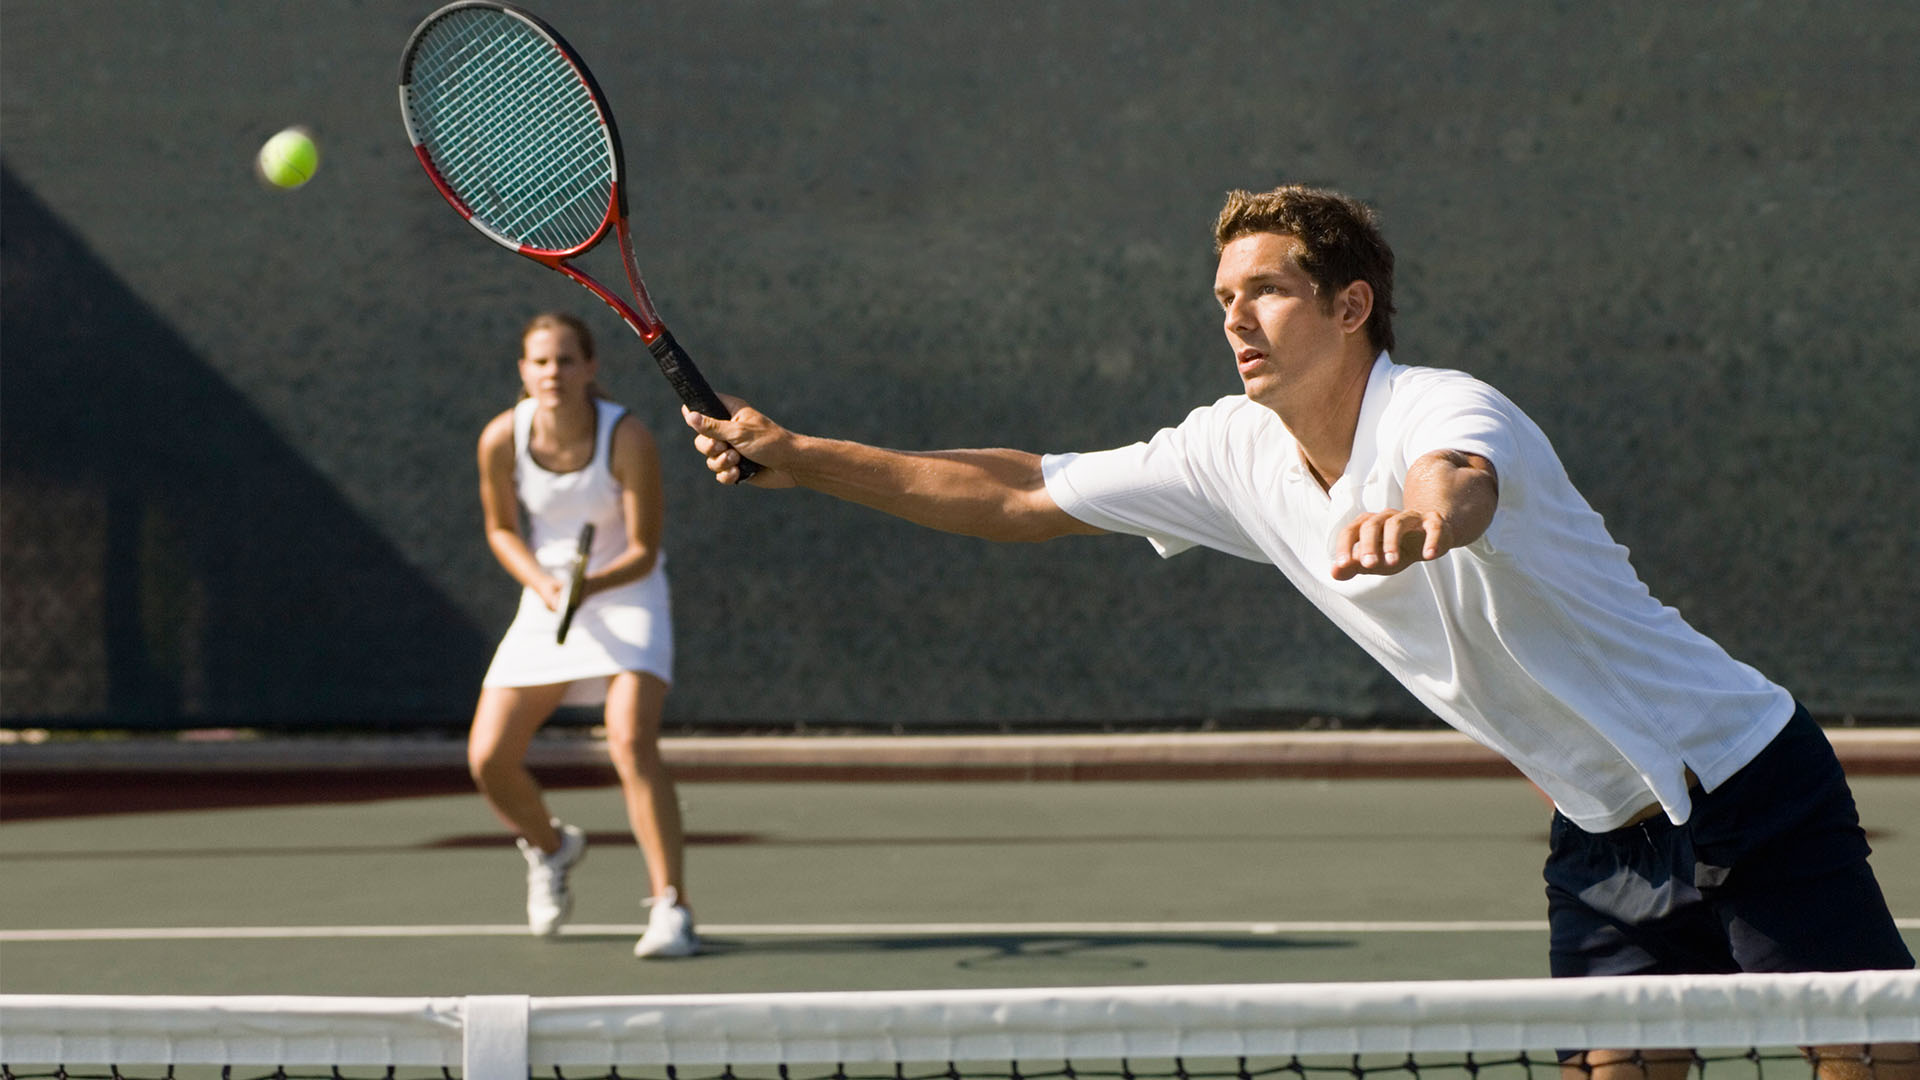 Mixed doubles tennis players with male reaching to hit a ball